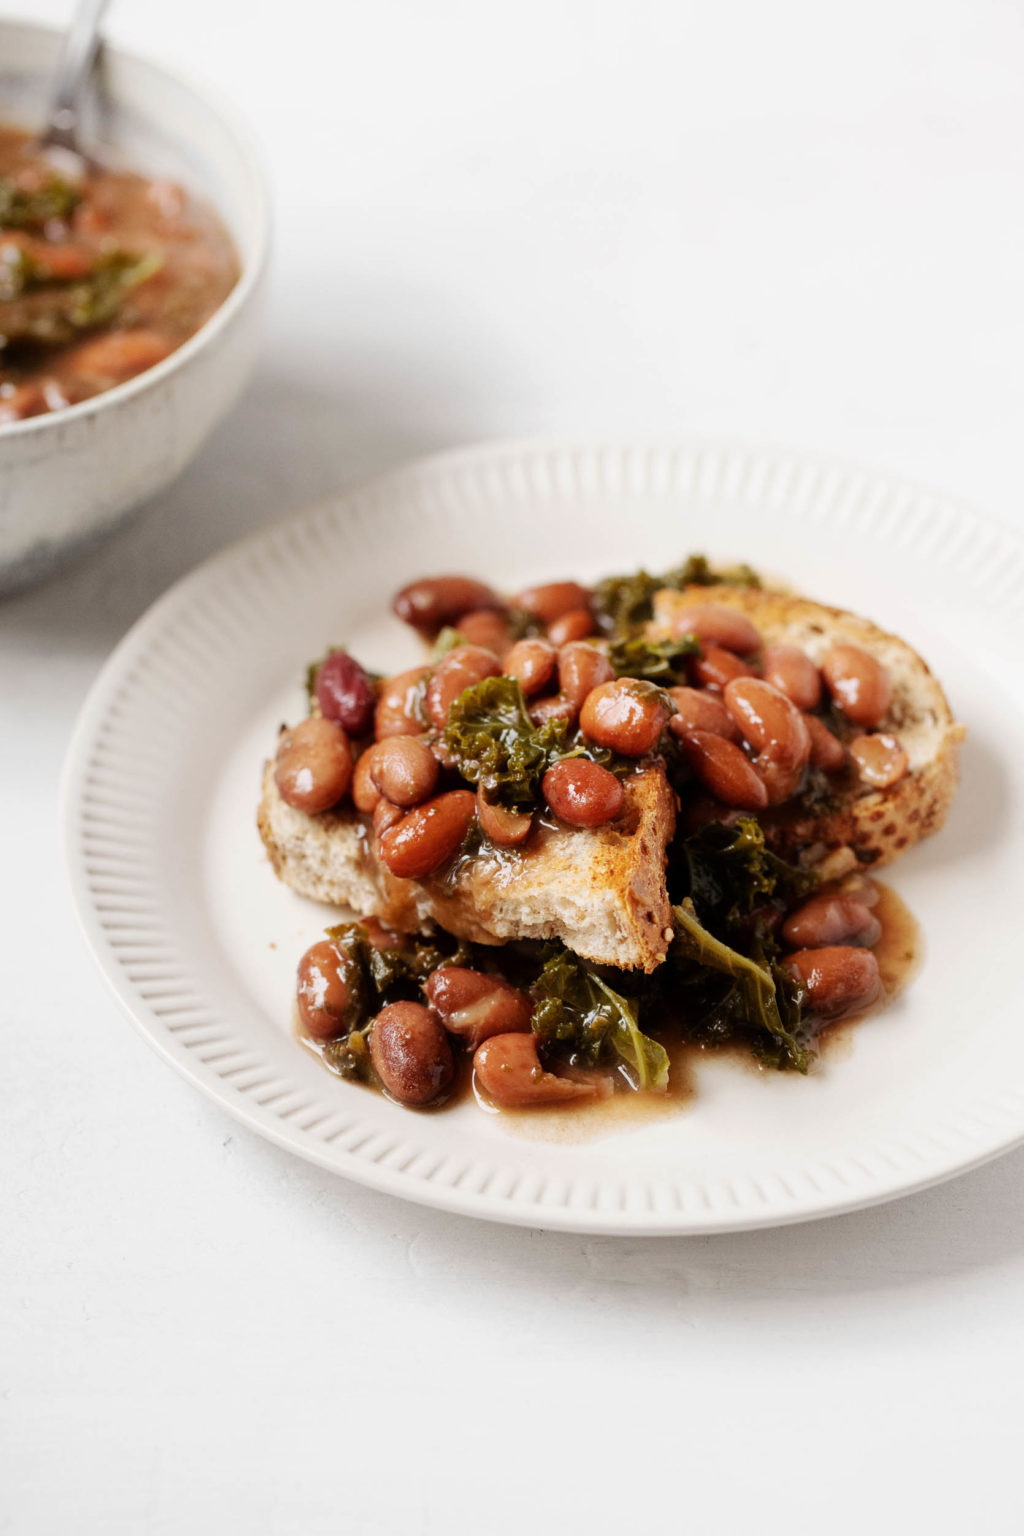 A white serving plate holds toast that has been smothered with braised beans and kale. A bowl with additional ingredients peeks out in the background.